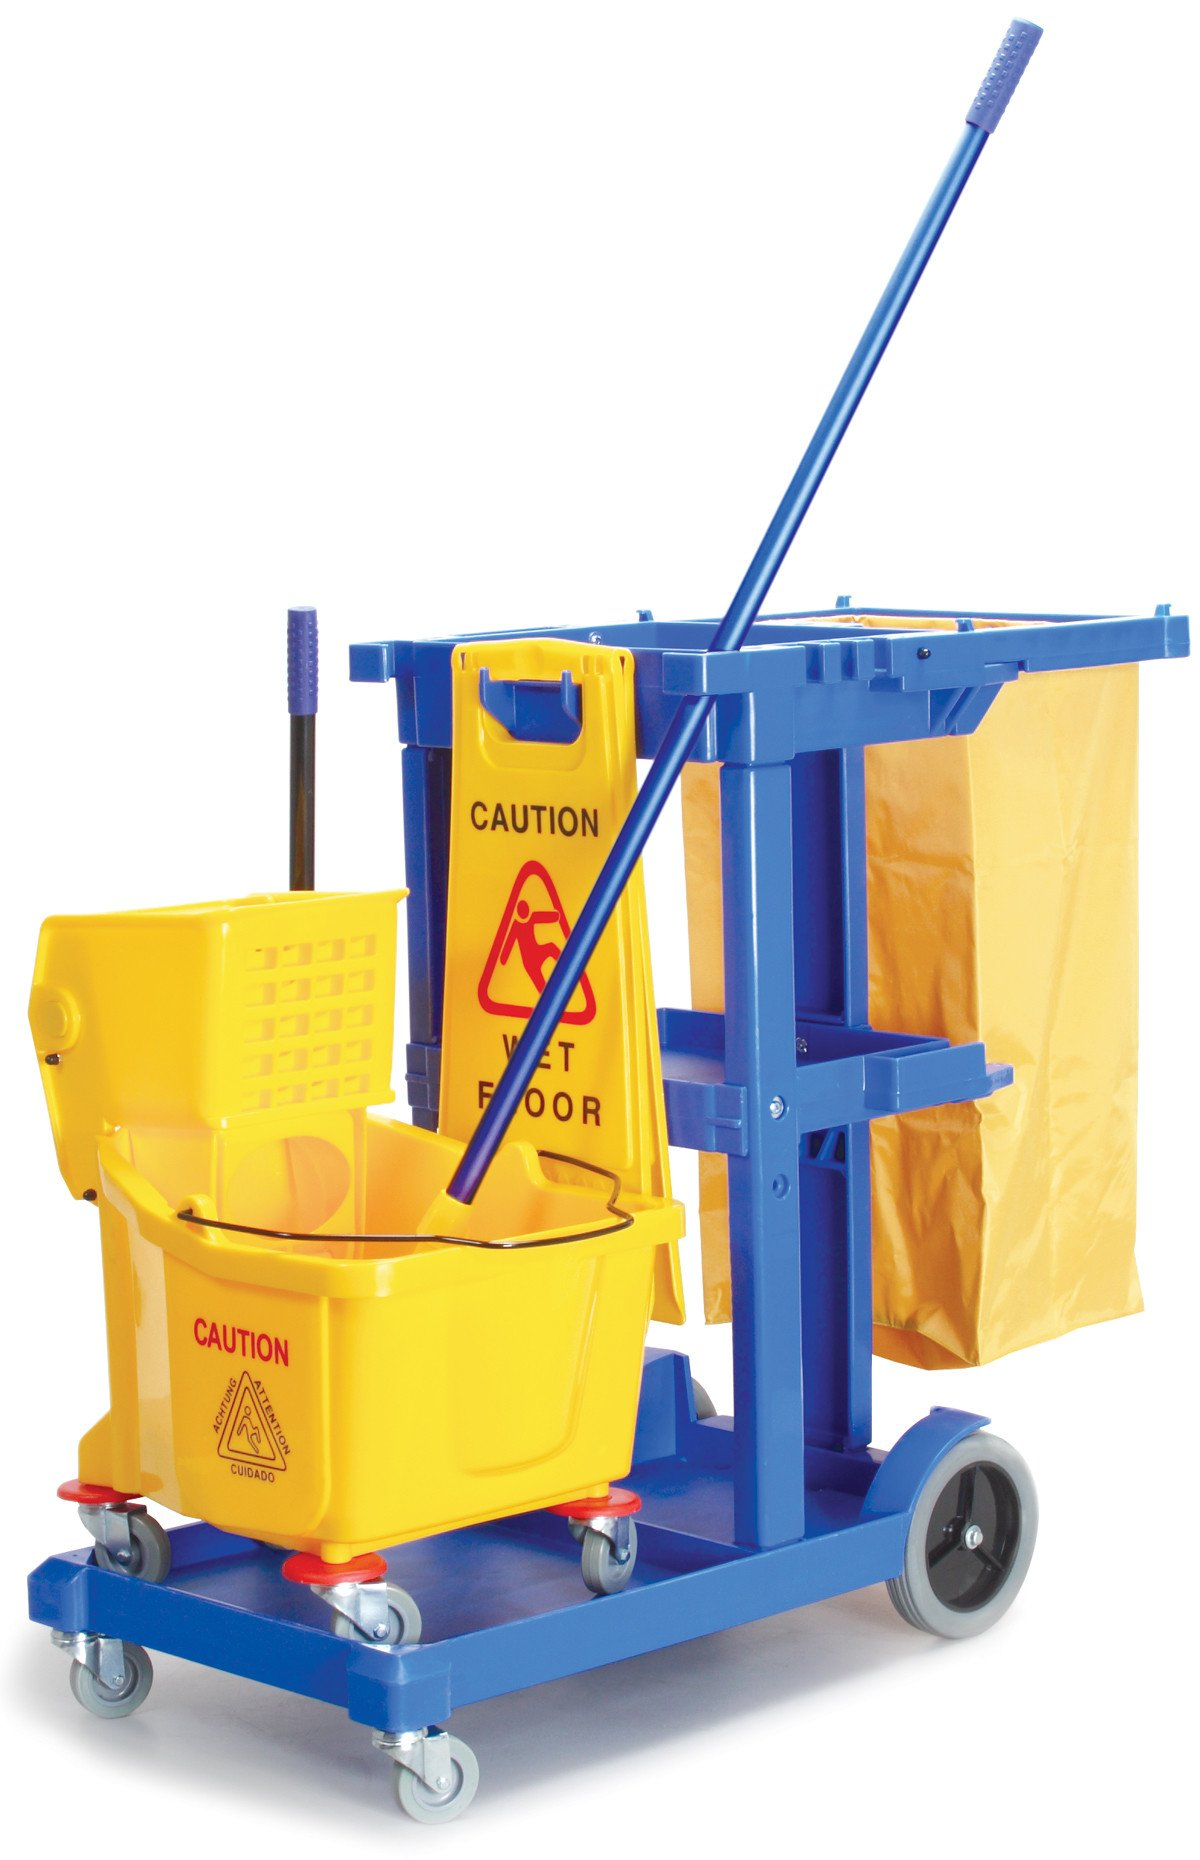 Powr-Flite JANKIT Janitorial Sanitation Kit, Includes Cleaning Cart, Wet Floor Sign, Jaw Grip Mop Handle and 9 gal Mop Bucket